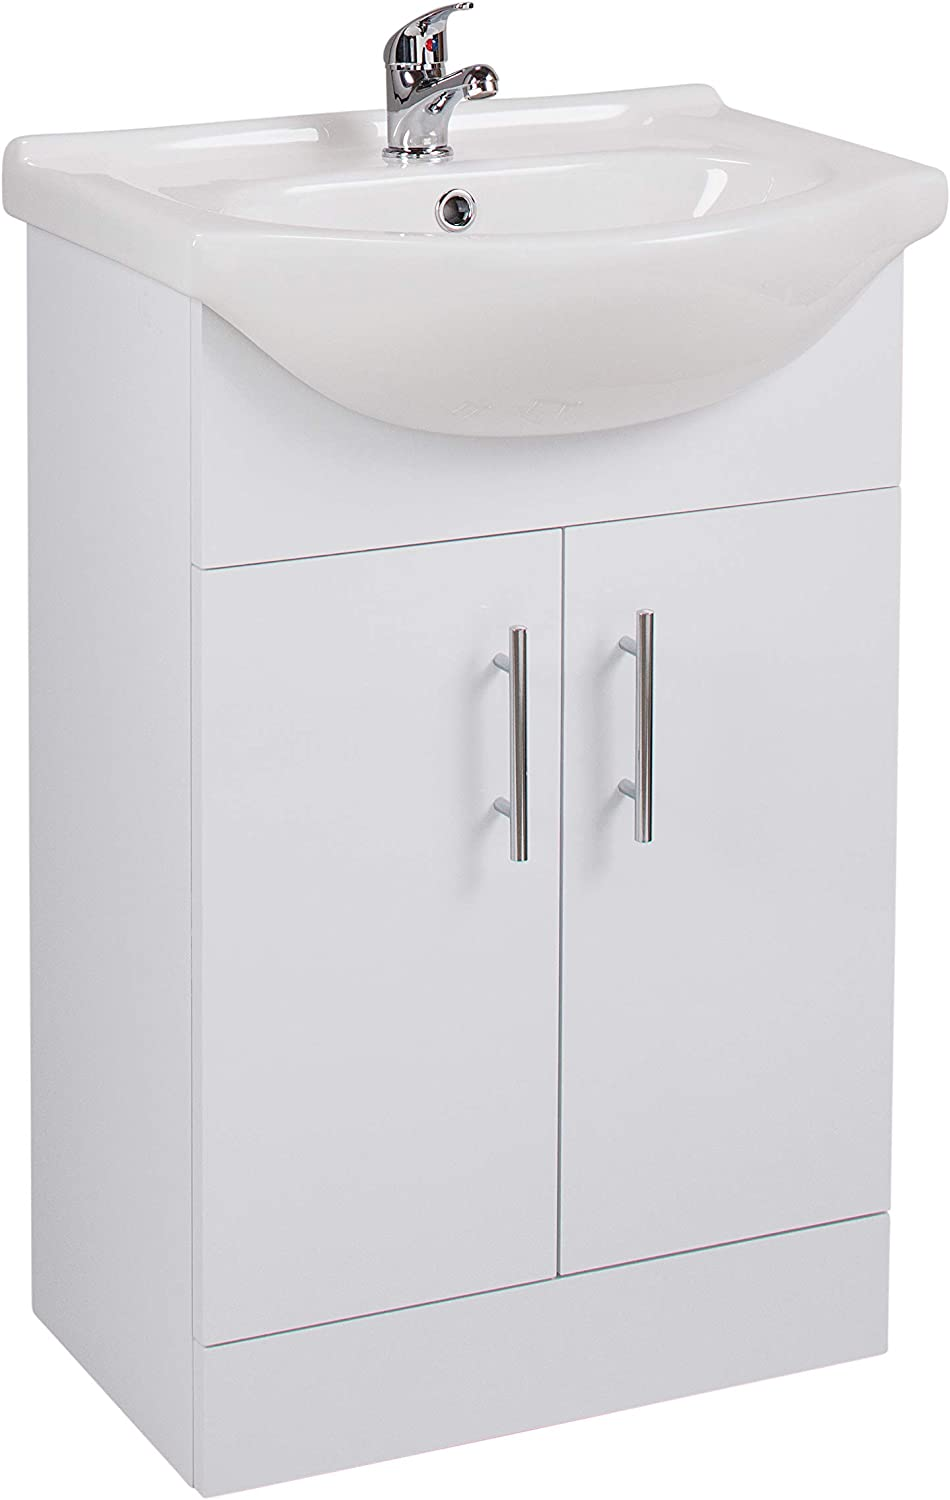 550mm Bathrooms Vanity Unit white gloss with Basin.